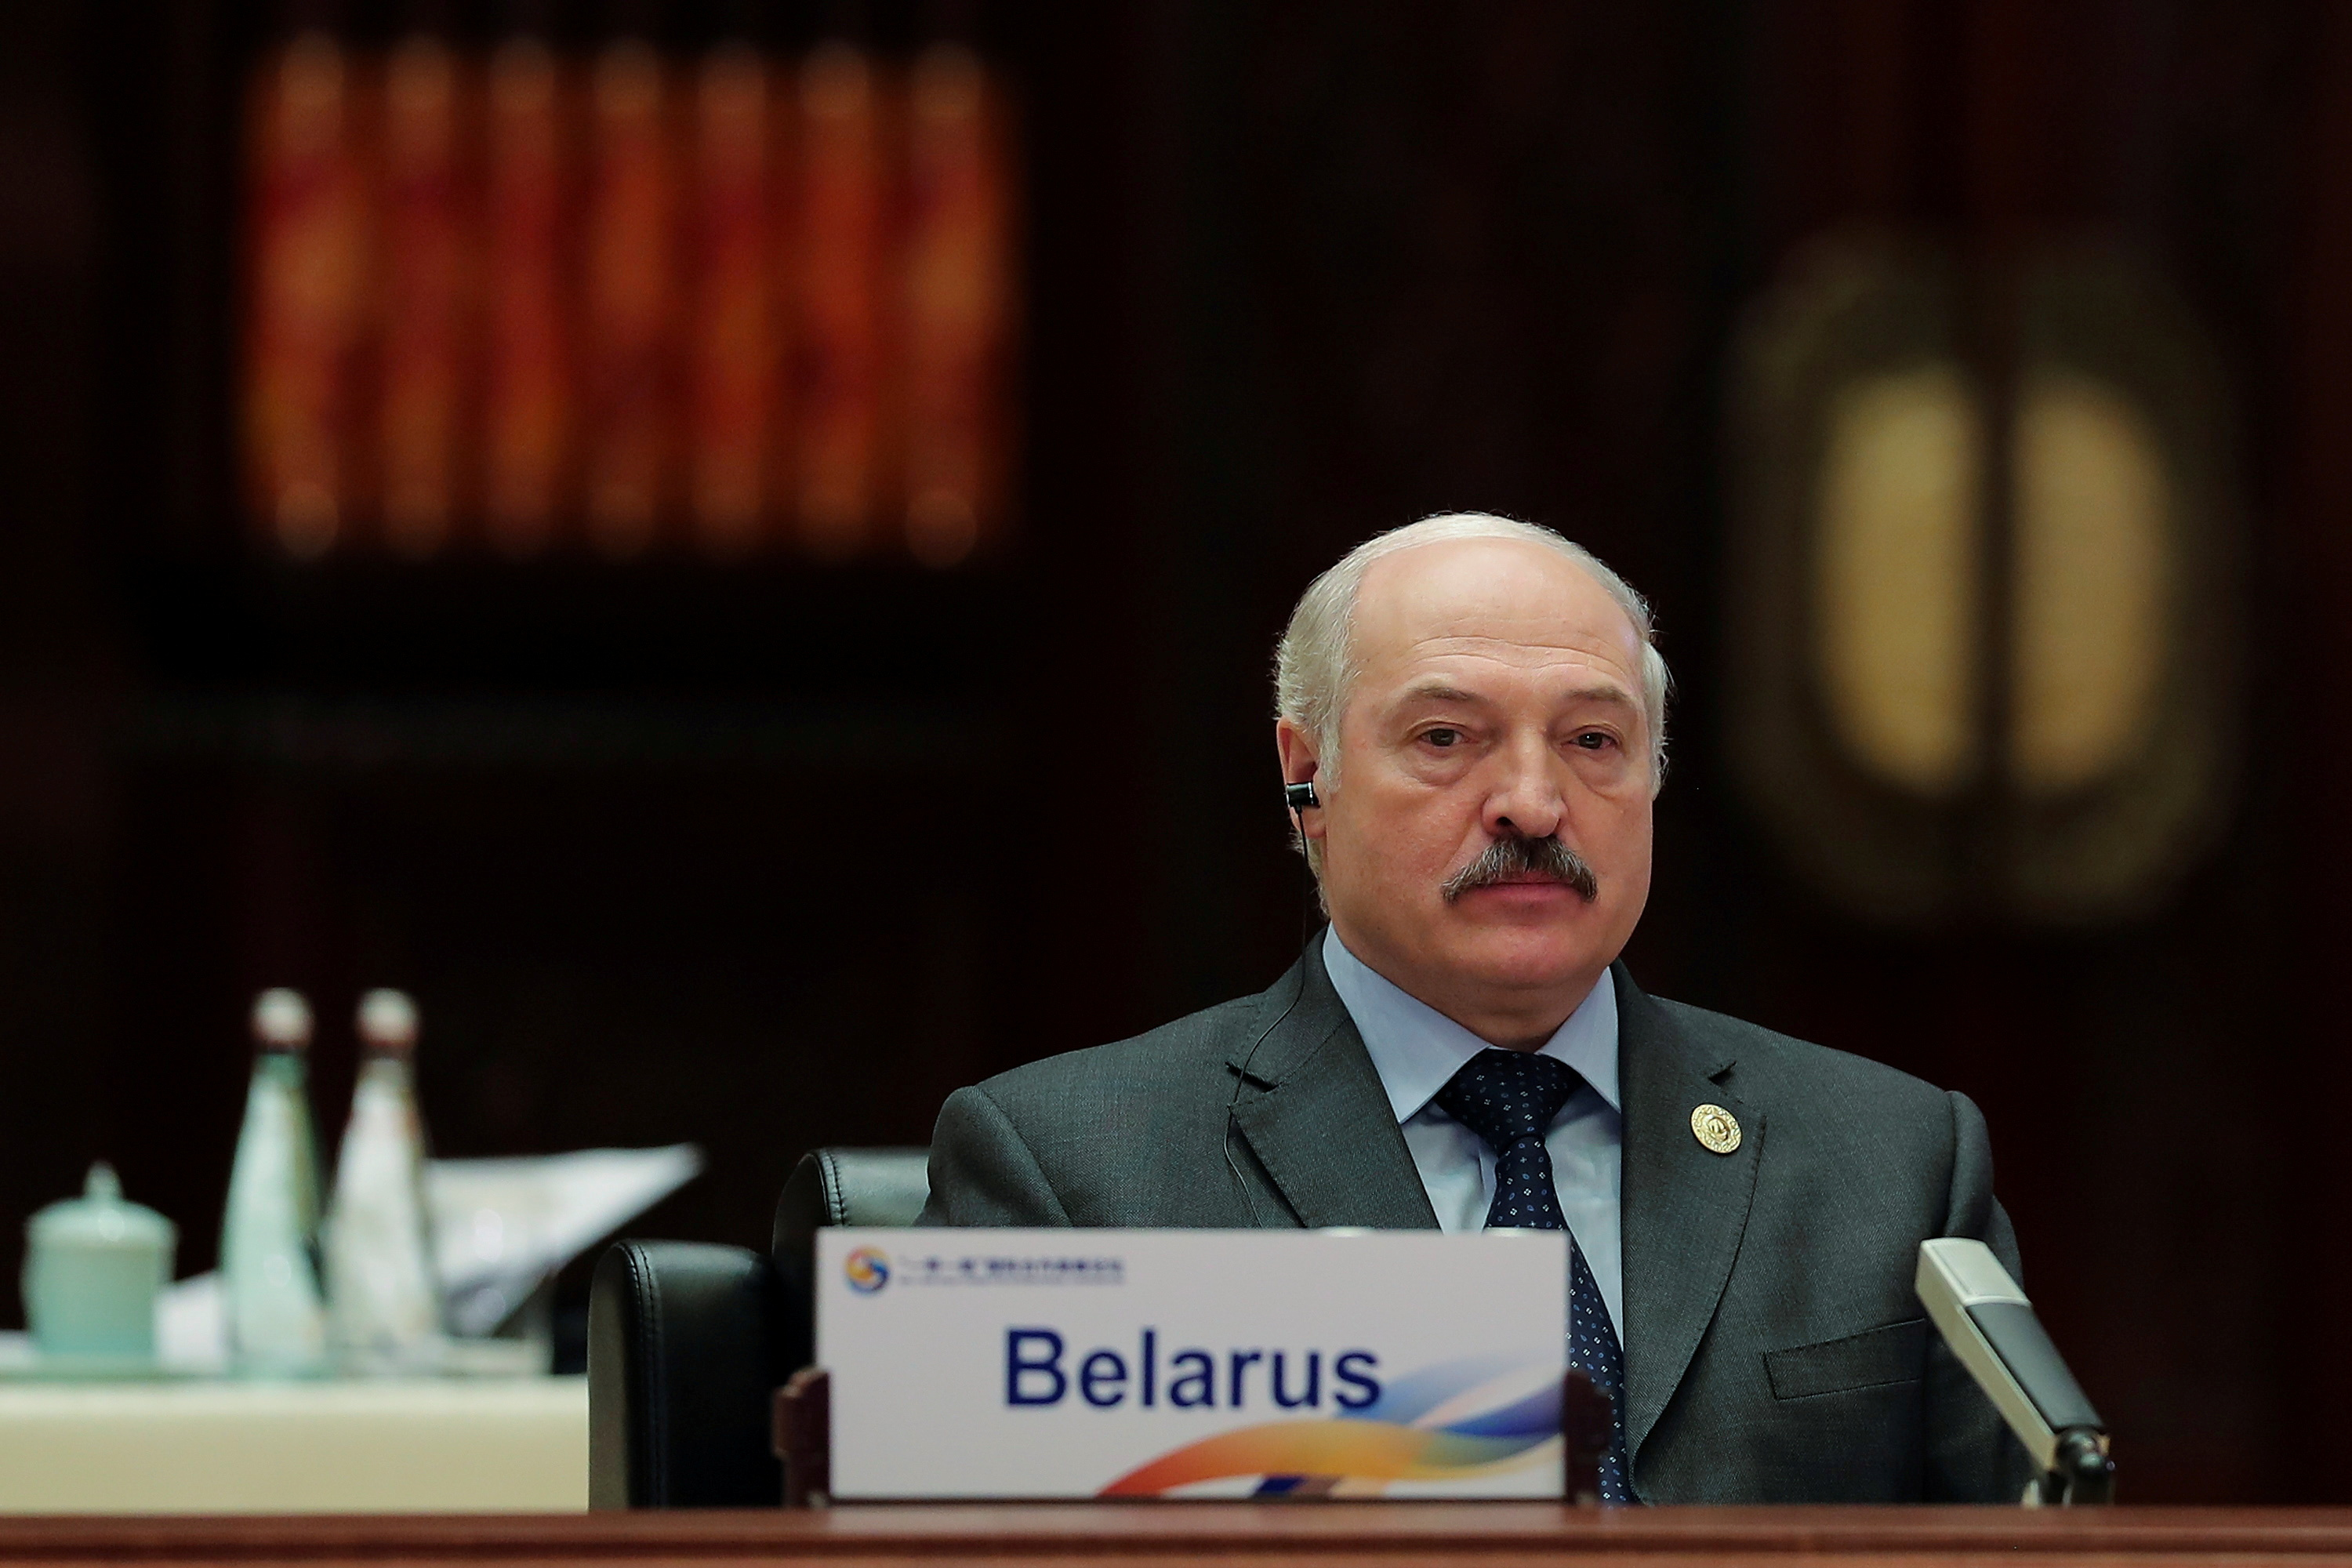 U.S. Slaps Belarus with Sanctions Over Human Rights Abuses, Erosion of Democracy